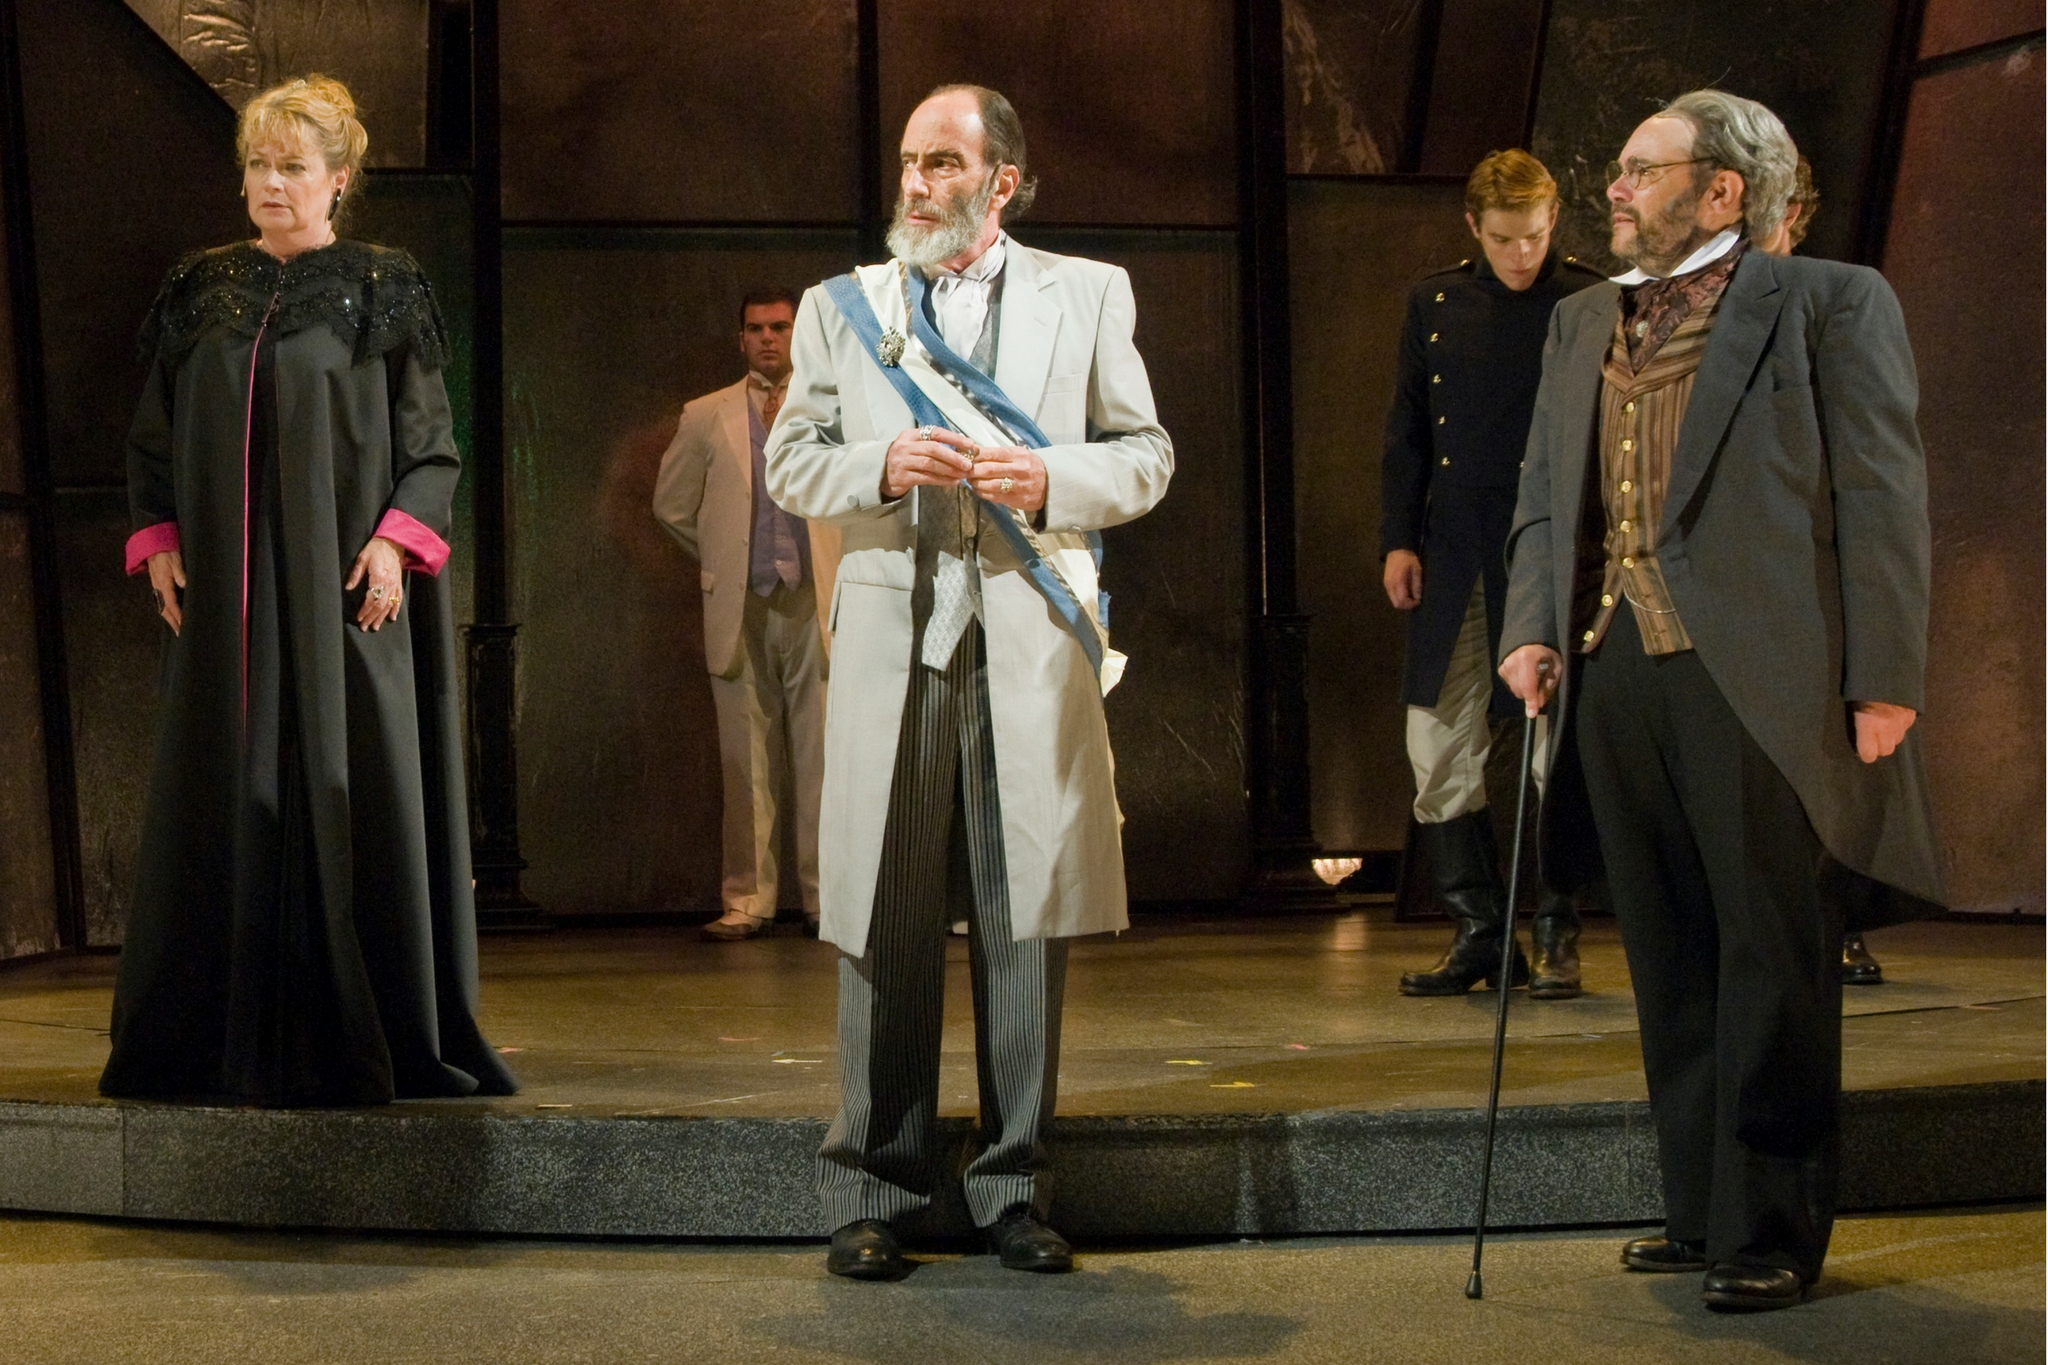 Karen MacDonald (Countess of Rousillon), Will LeBow (King of France), and Remo Airaldi (Lafeu) in All's Well That Ends Well, Shakespeare on the Common 2011-Photo by Andrew Brilliant